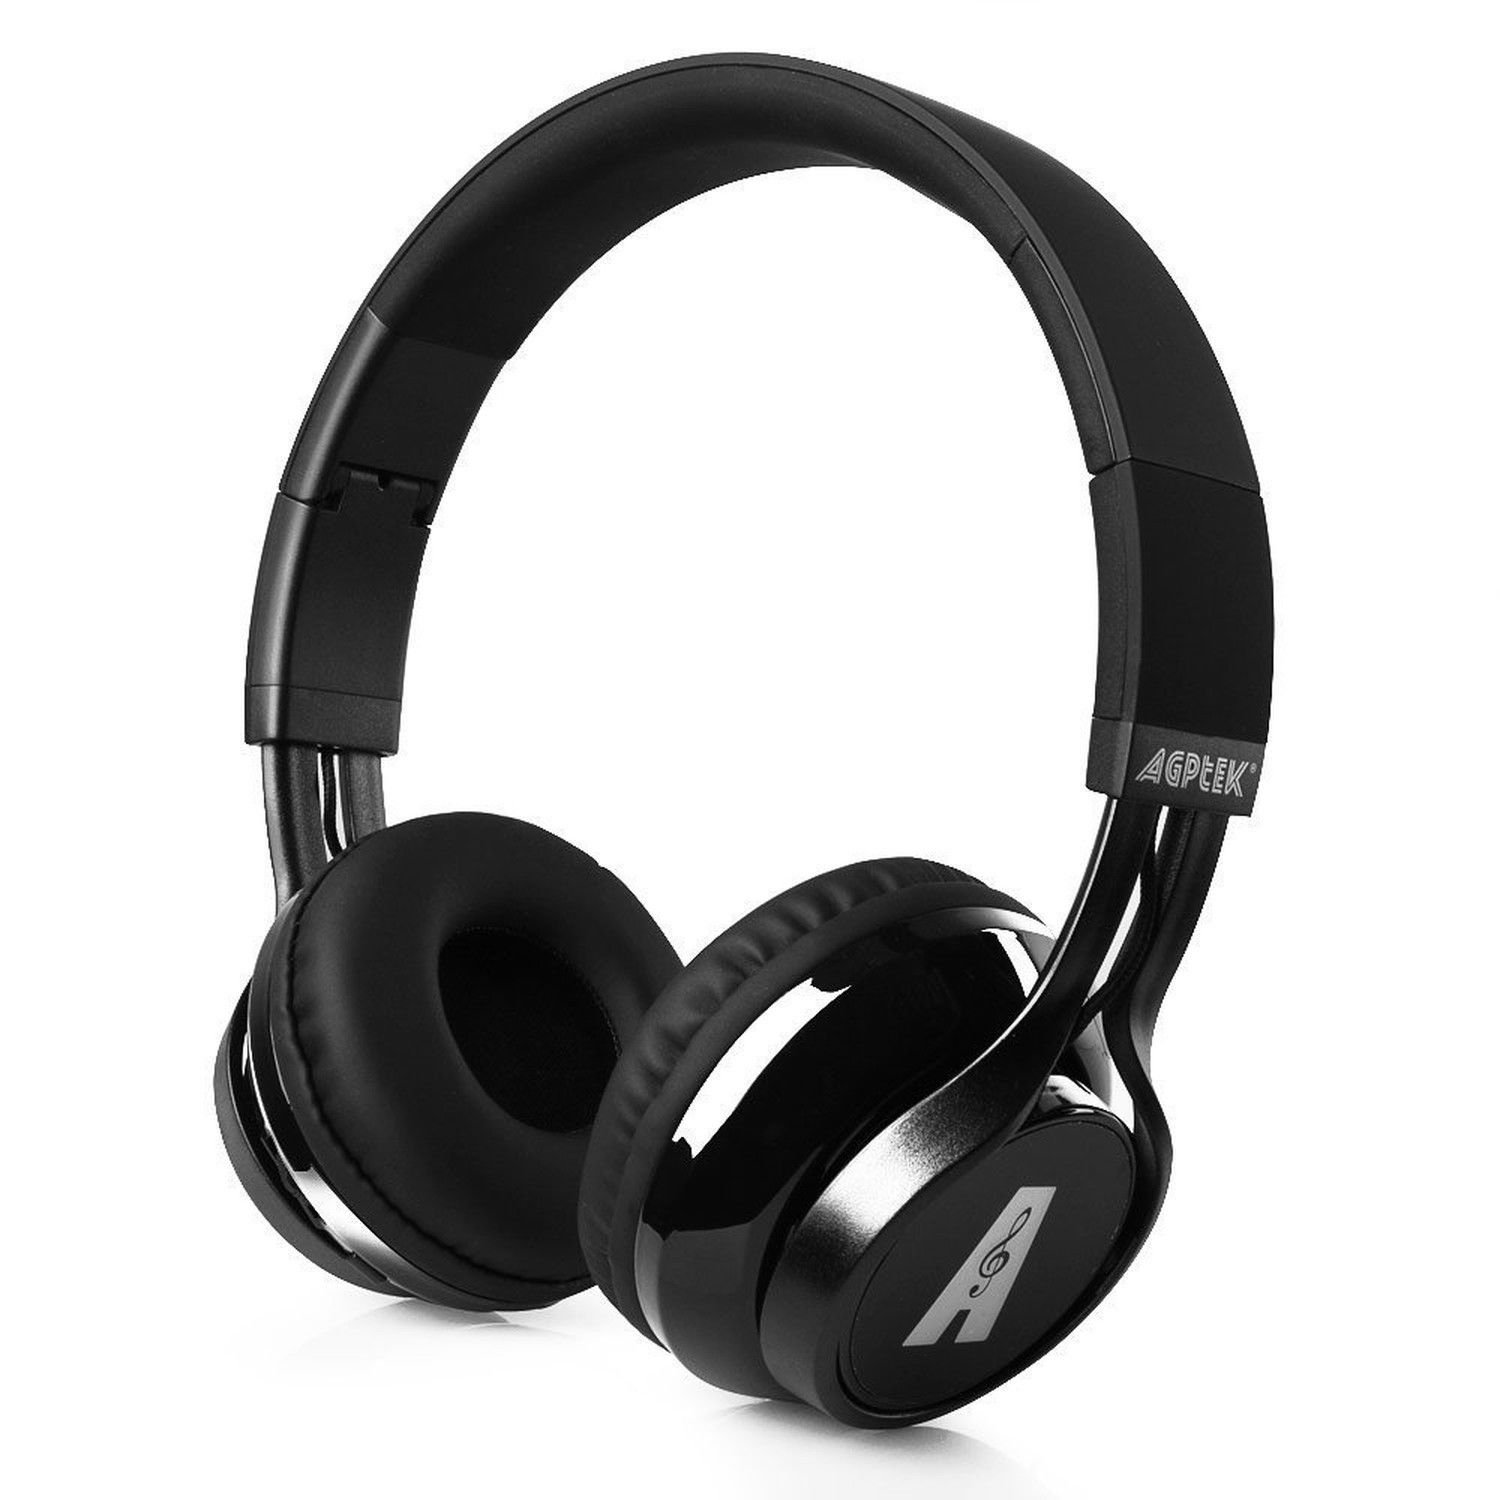 Bluetooth Headset, Foldable Over Ear Wireless Headphones Hands-free Calling with CD Quality Talking/playing HD Sound for Smartphone, Tablet, PC